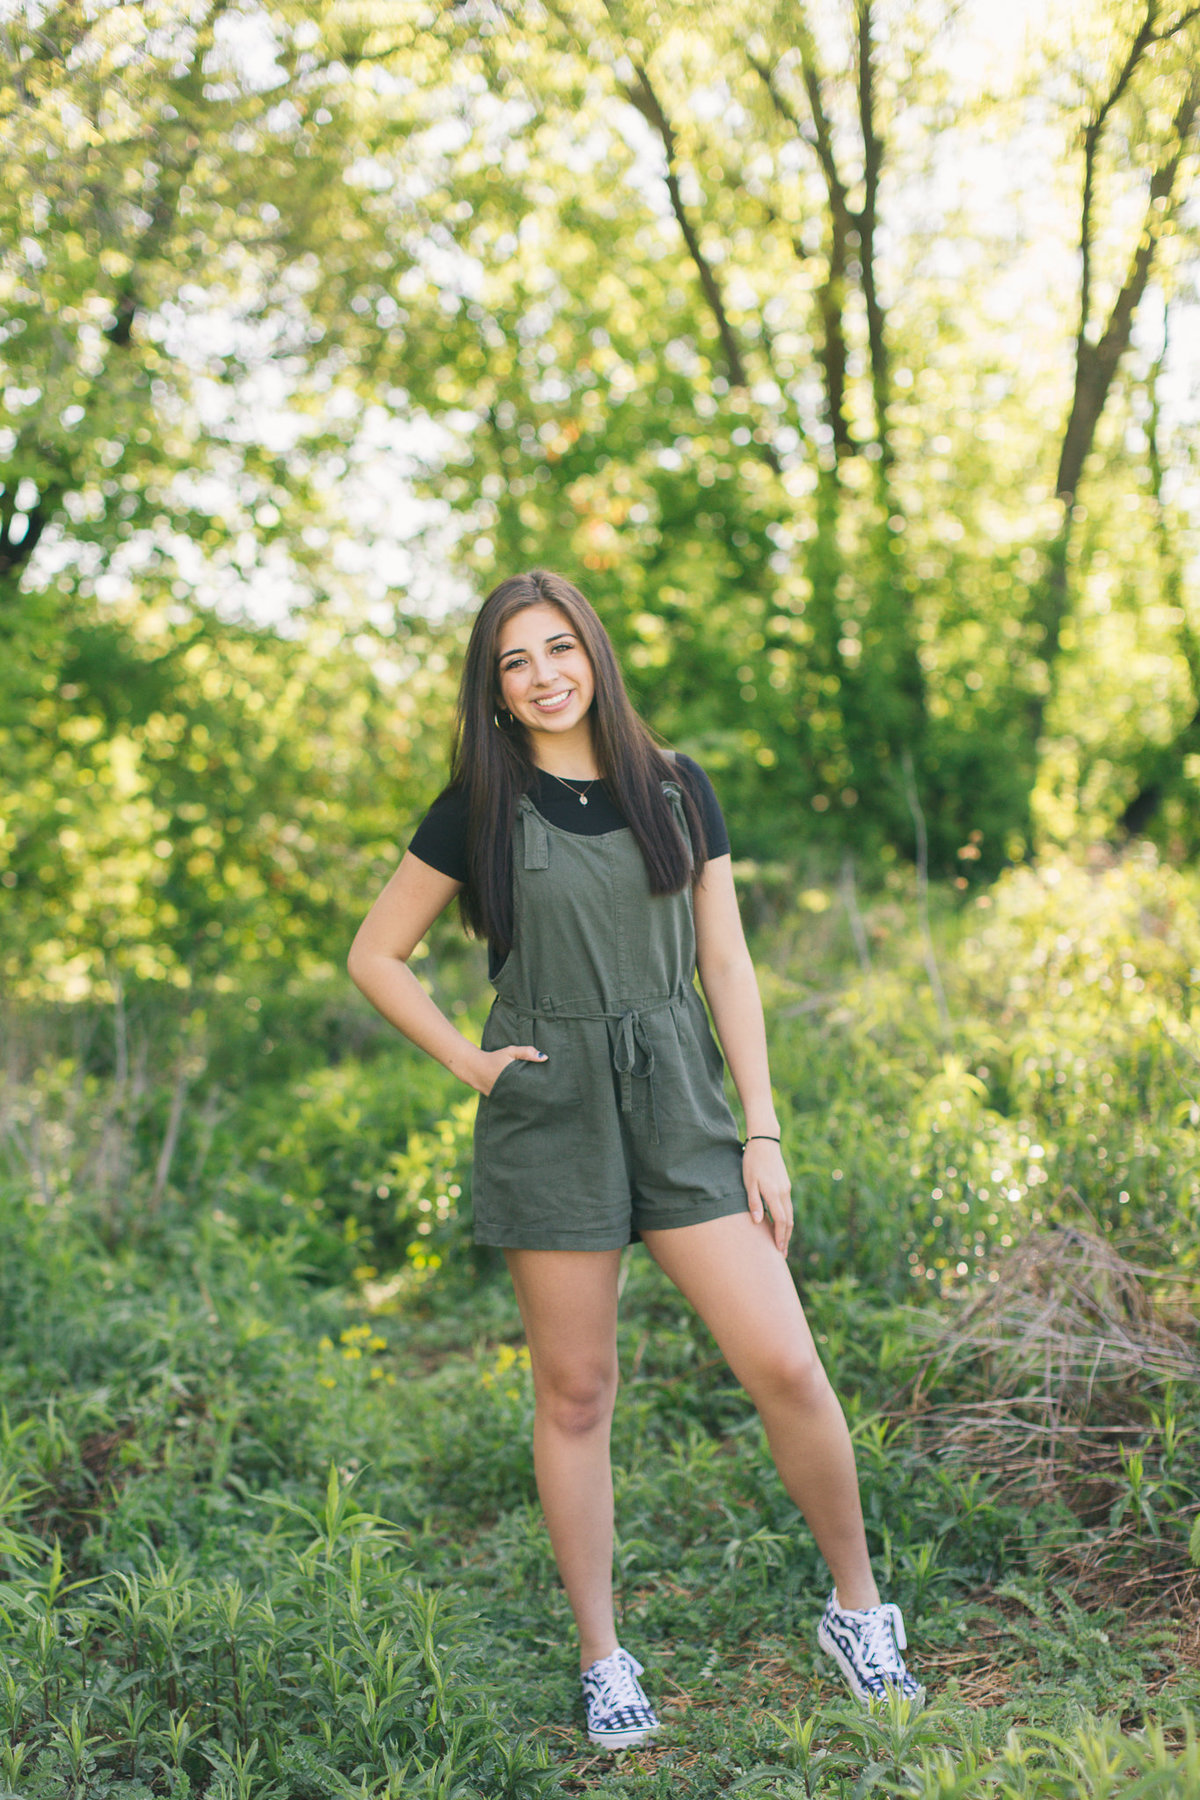 Jessie-Sarah-Chacos-Minneapolis-Senior-Photographer-11